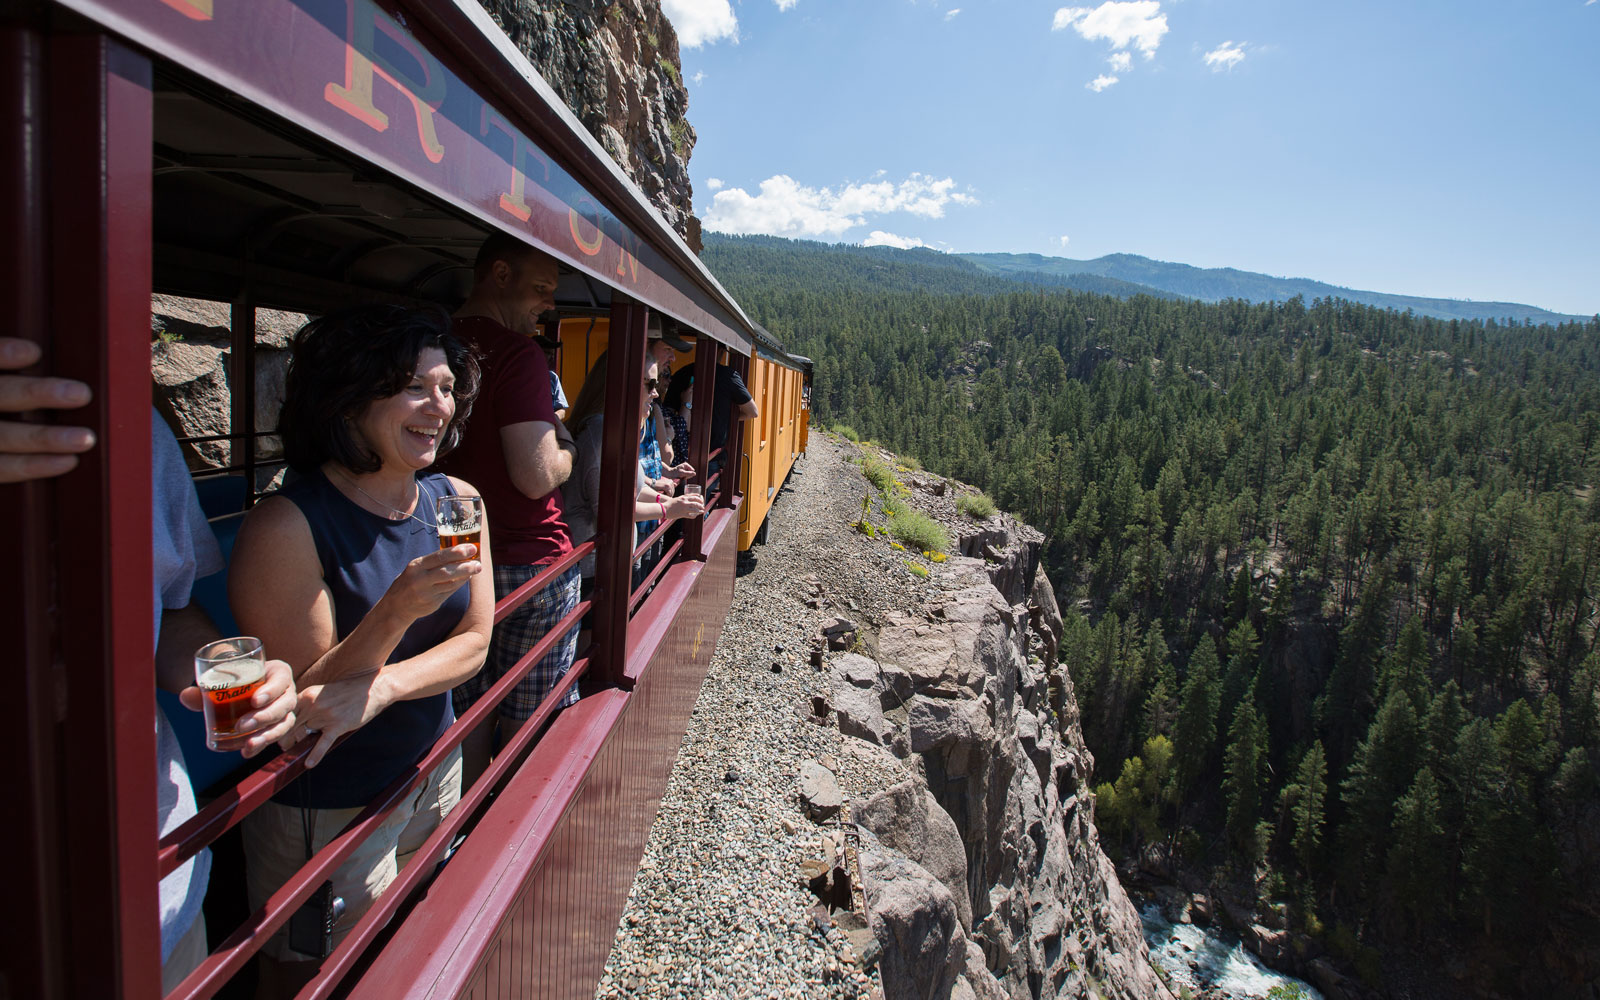 Get sky-high views over the Animas River on the Durango Brew Train.